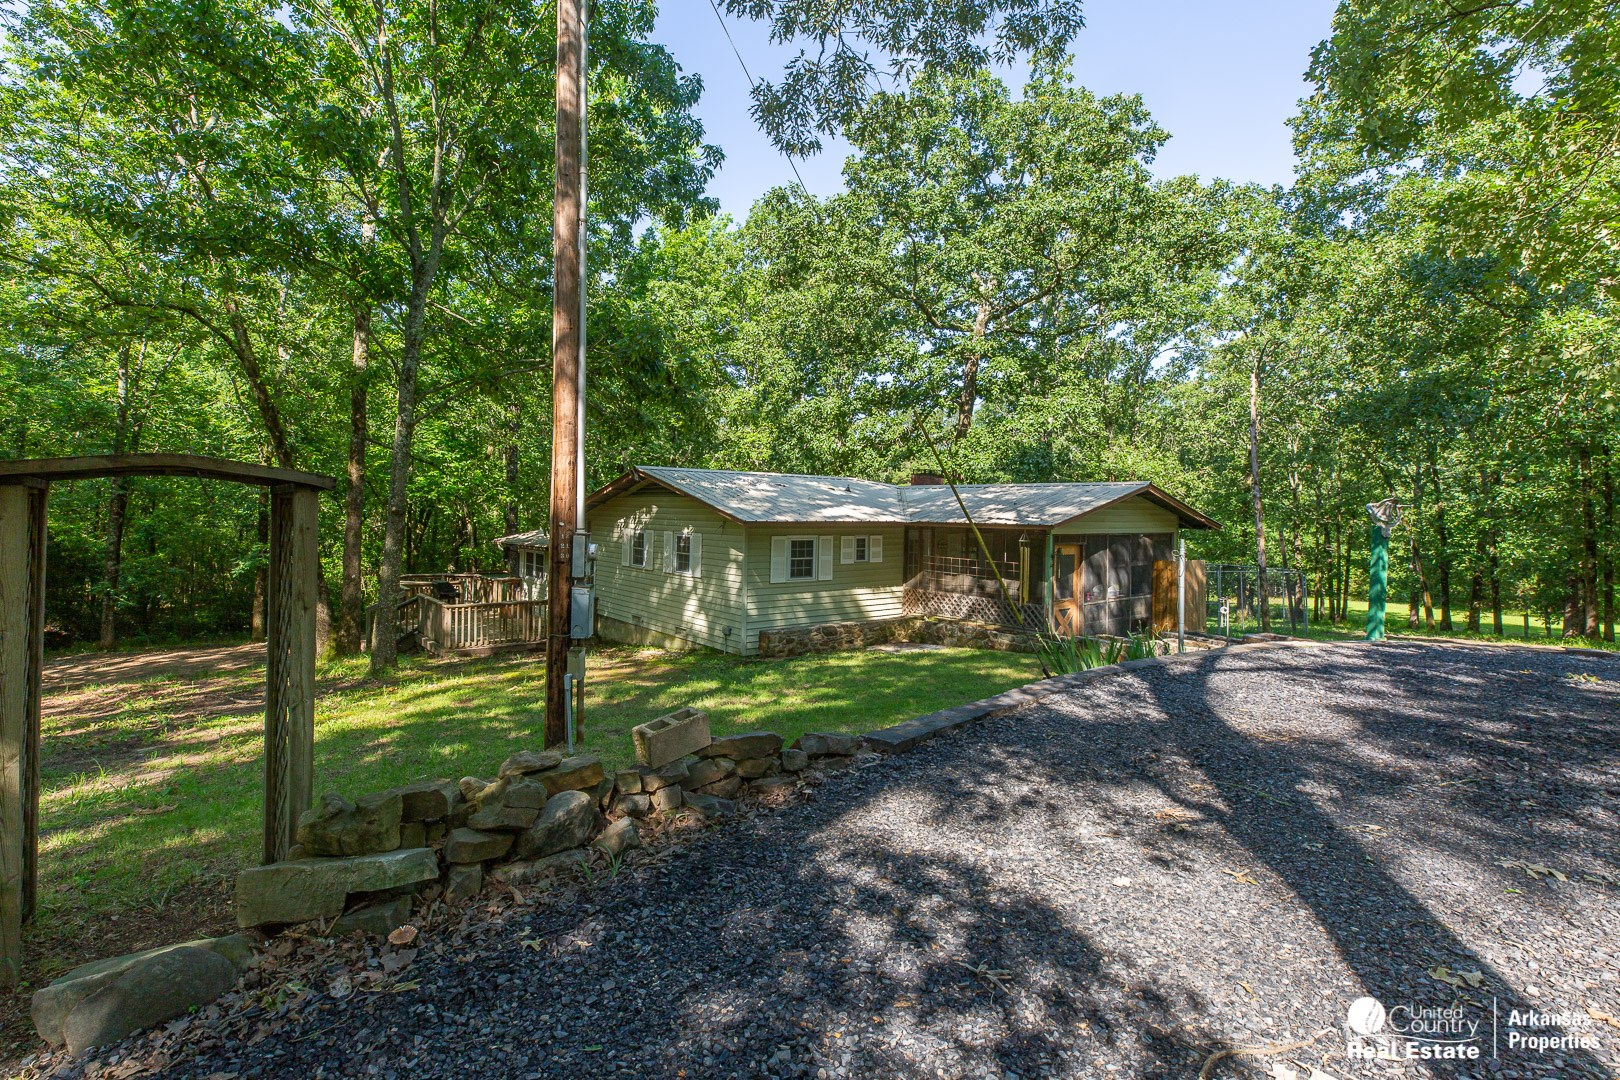 Country home with land for sale in Arkansas.